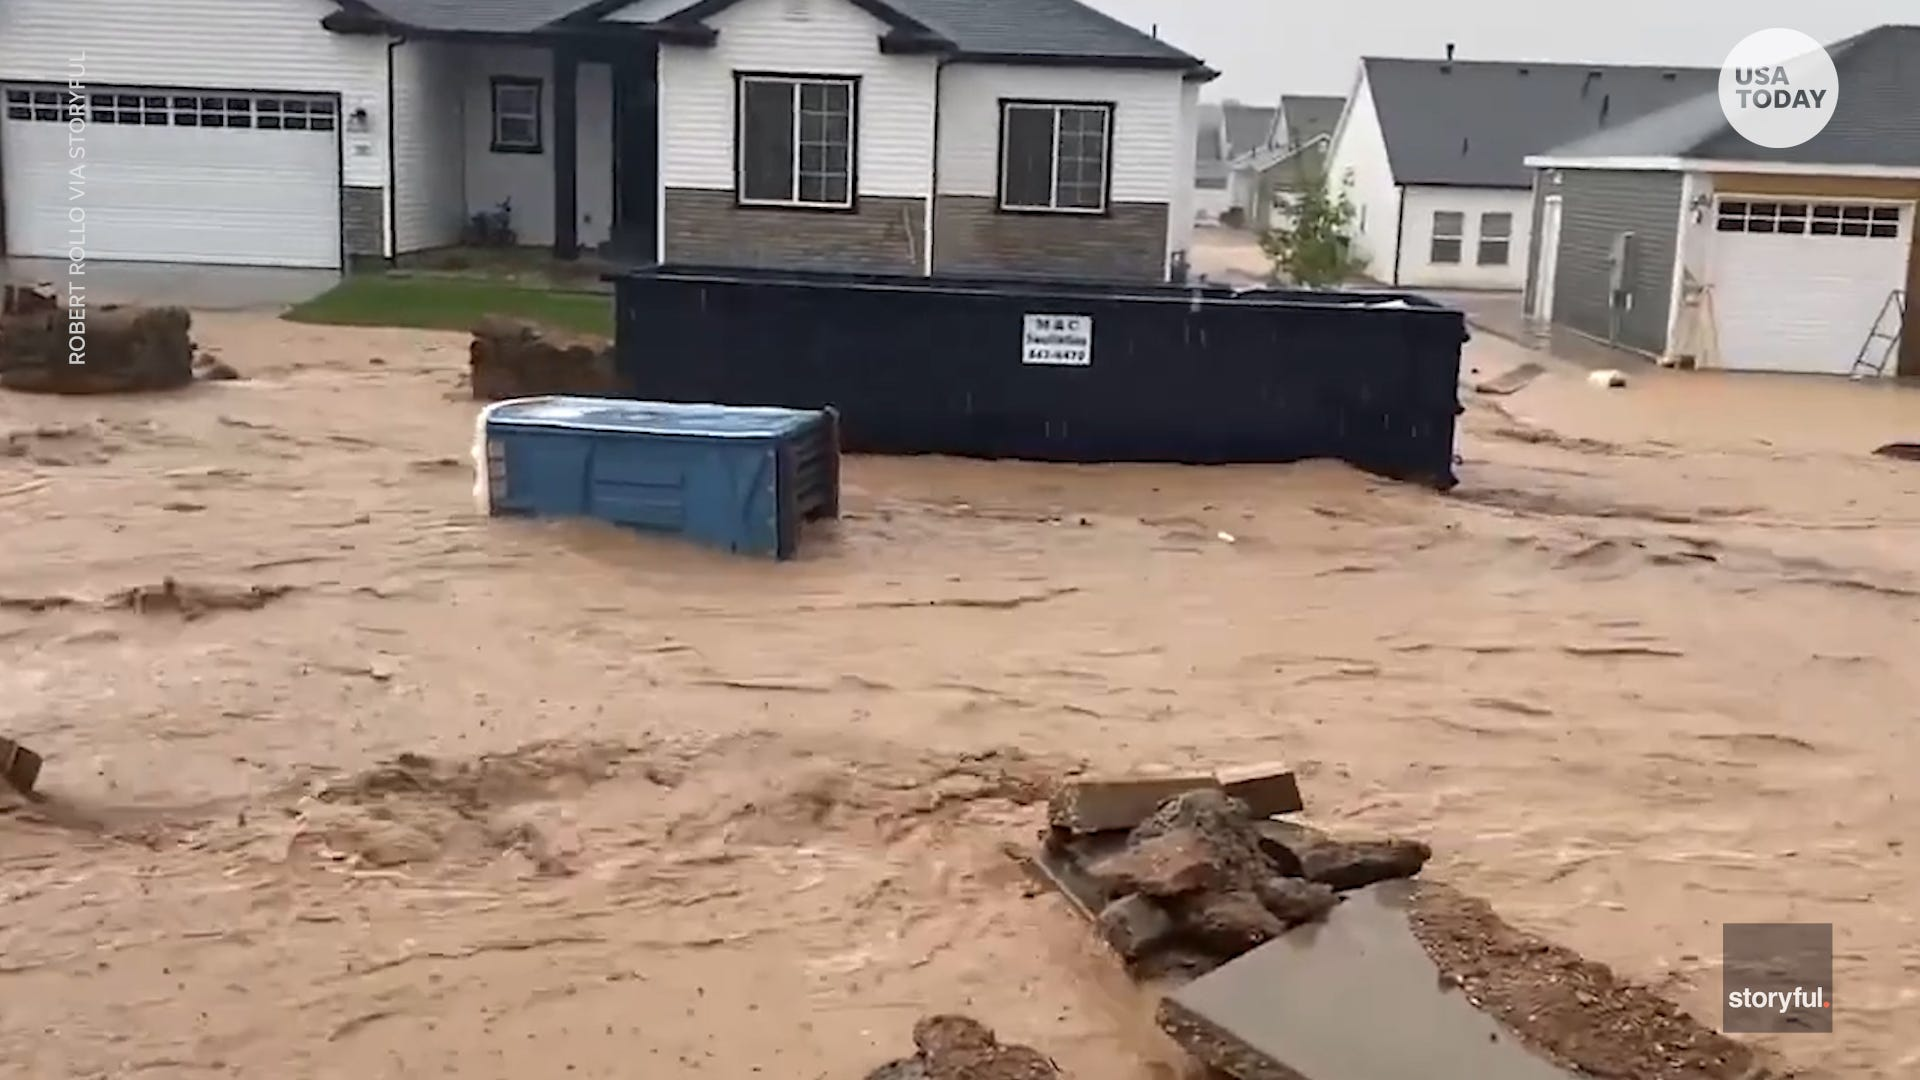 Chaos and major flooding occurred after two inches of rain fell over just one hour in Utah